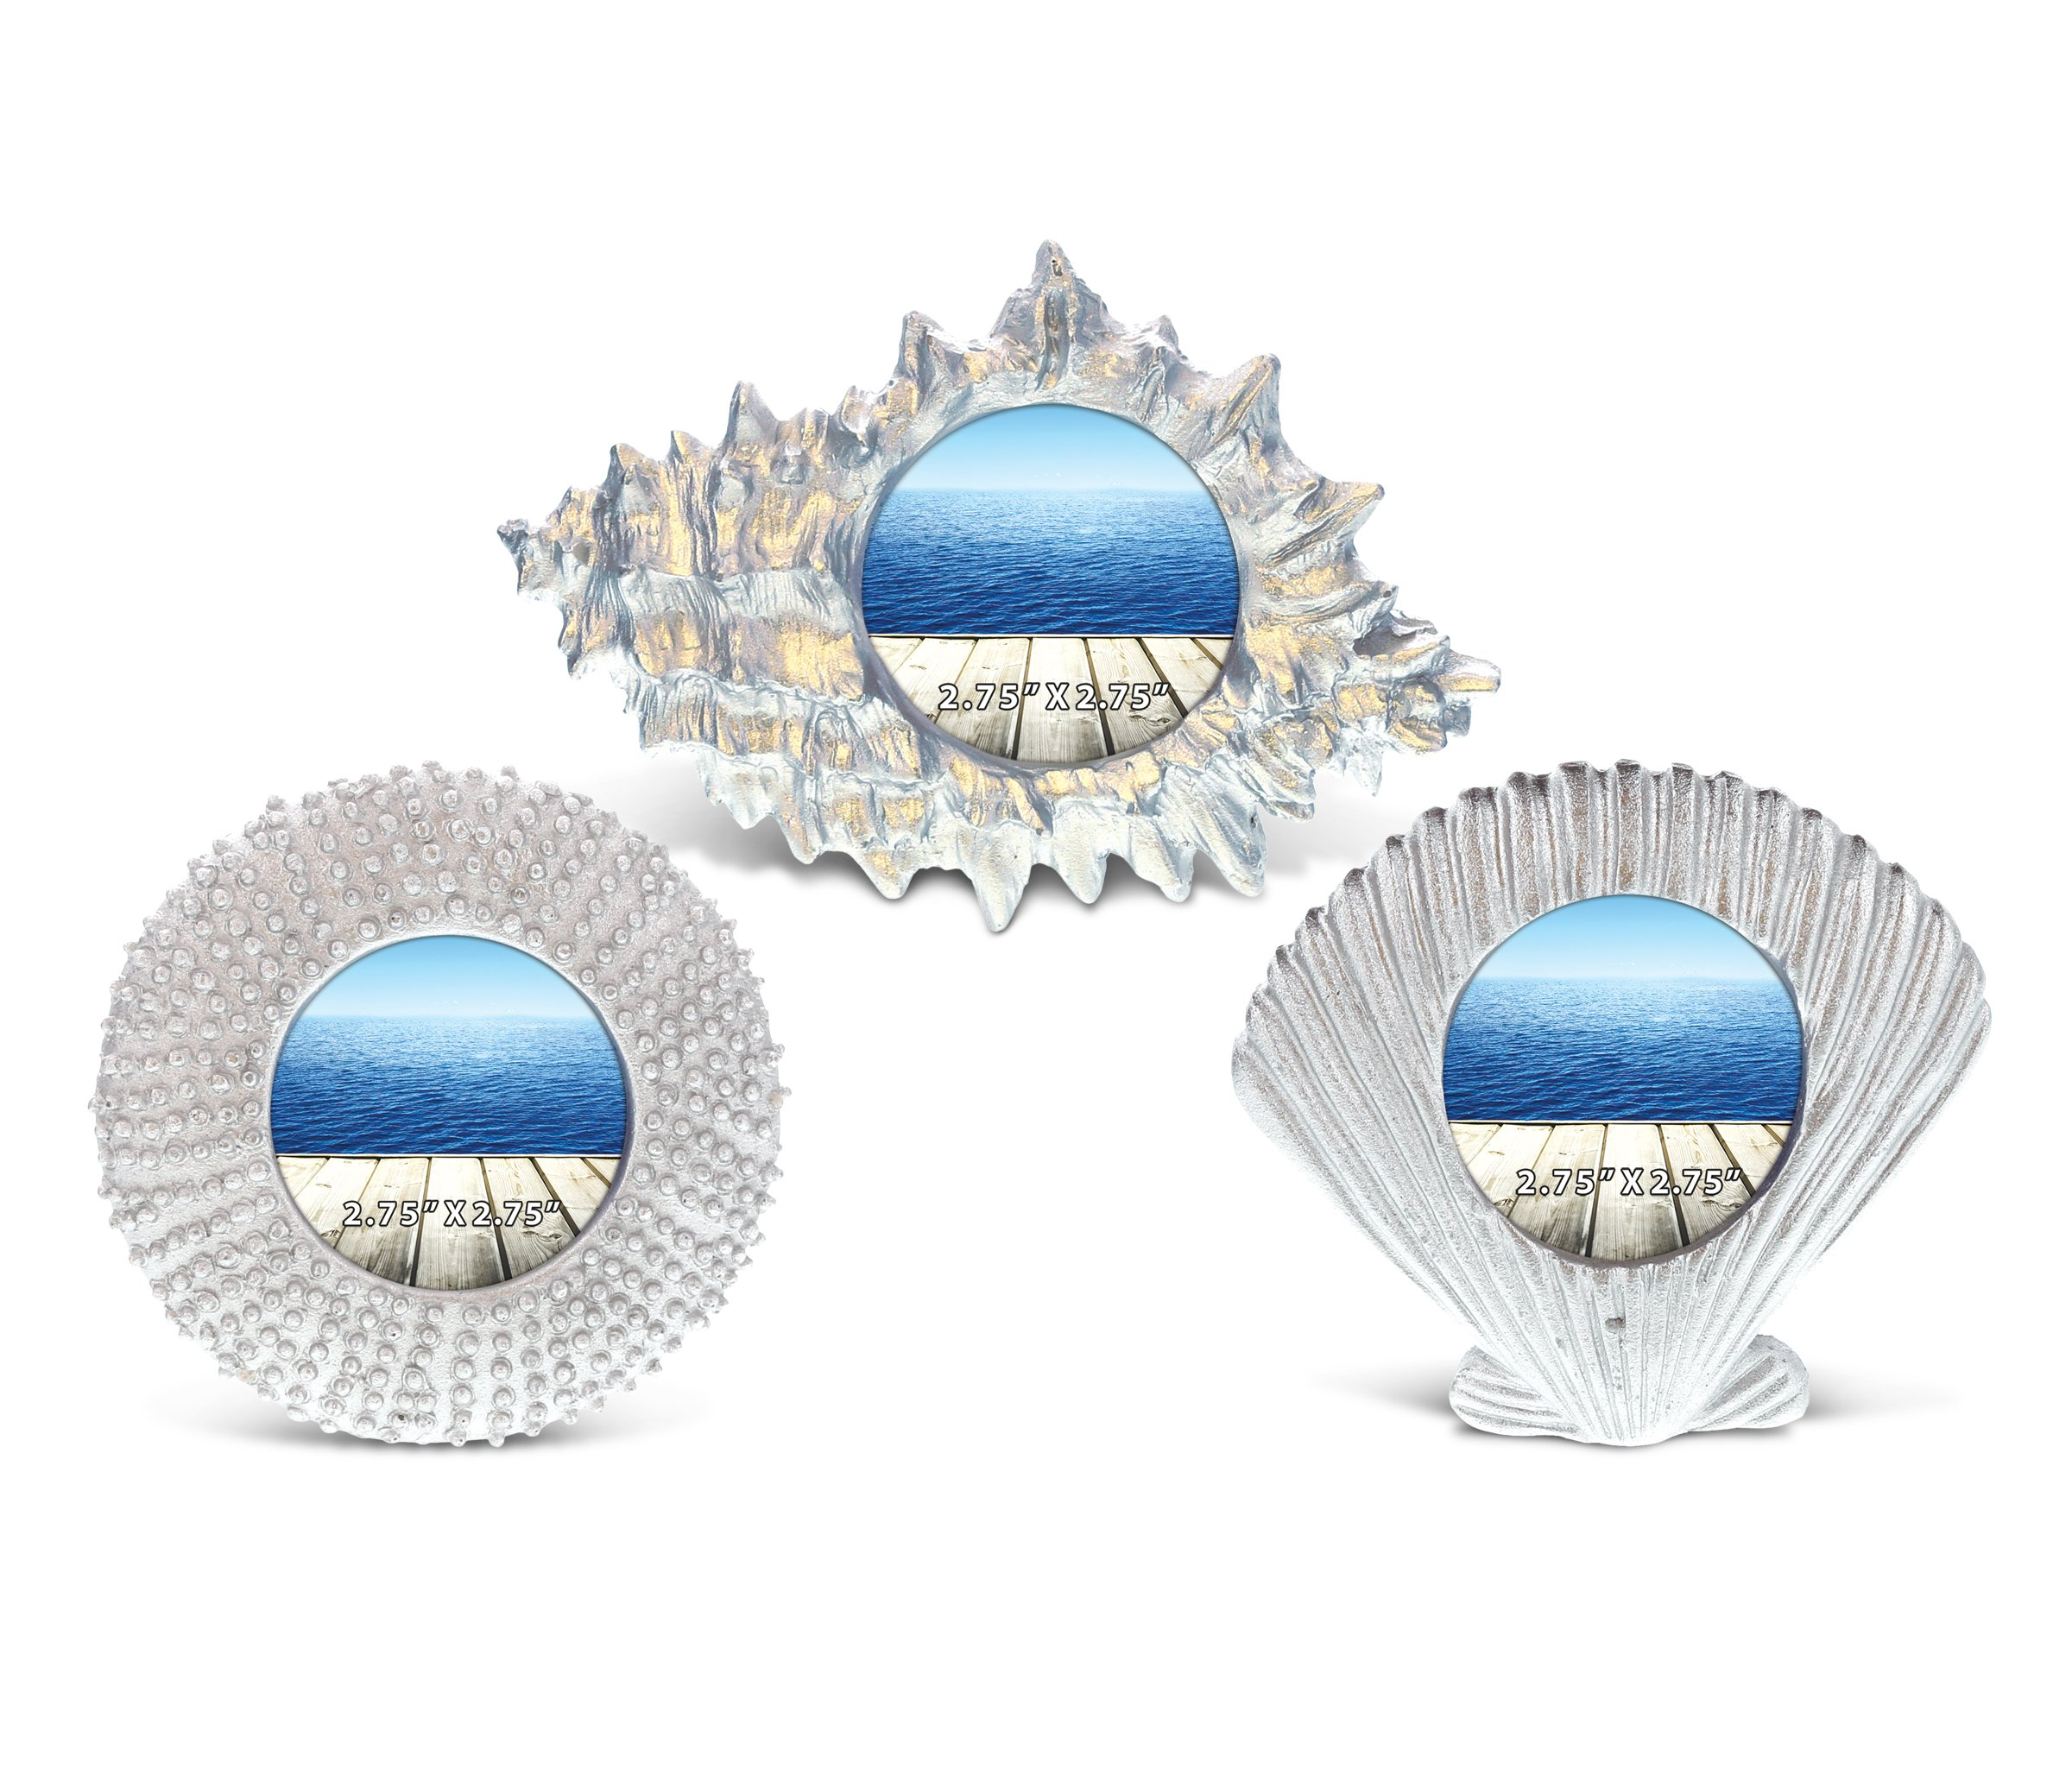 CoTa Global Silver Sea Shell Conch Inspired Photo Frames Nautical Handcrafted Resin Picture Holder Aquatic Ocean Life Animal Frame Memories Bright & Unique for Marine Themed Rooms Home Decor (3pc Set)